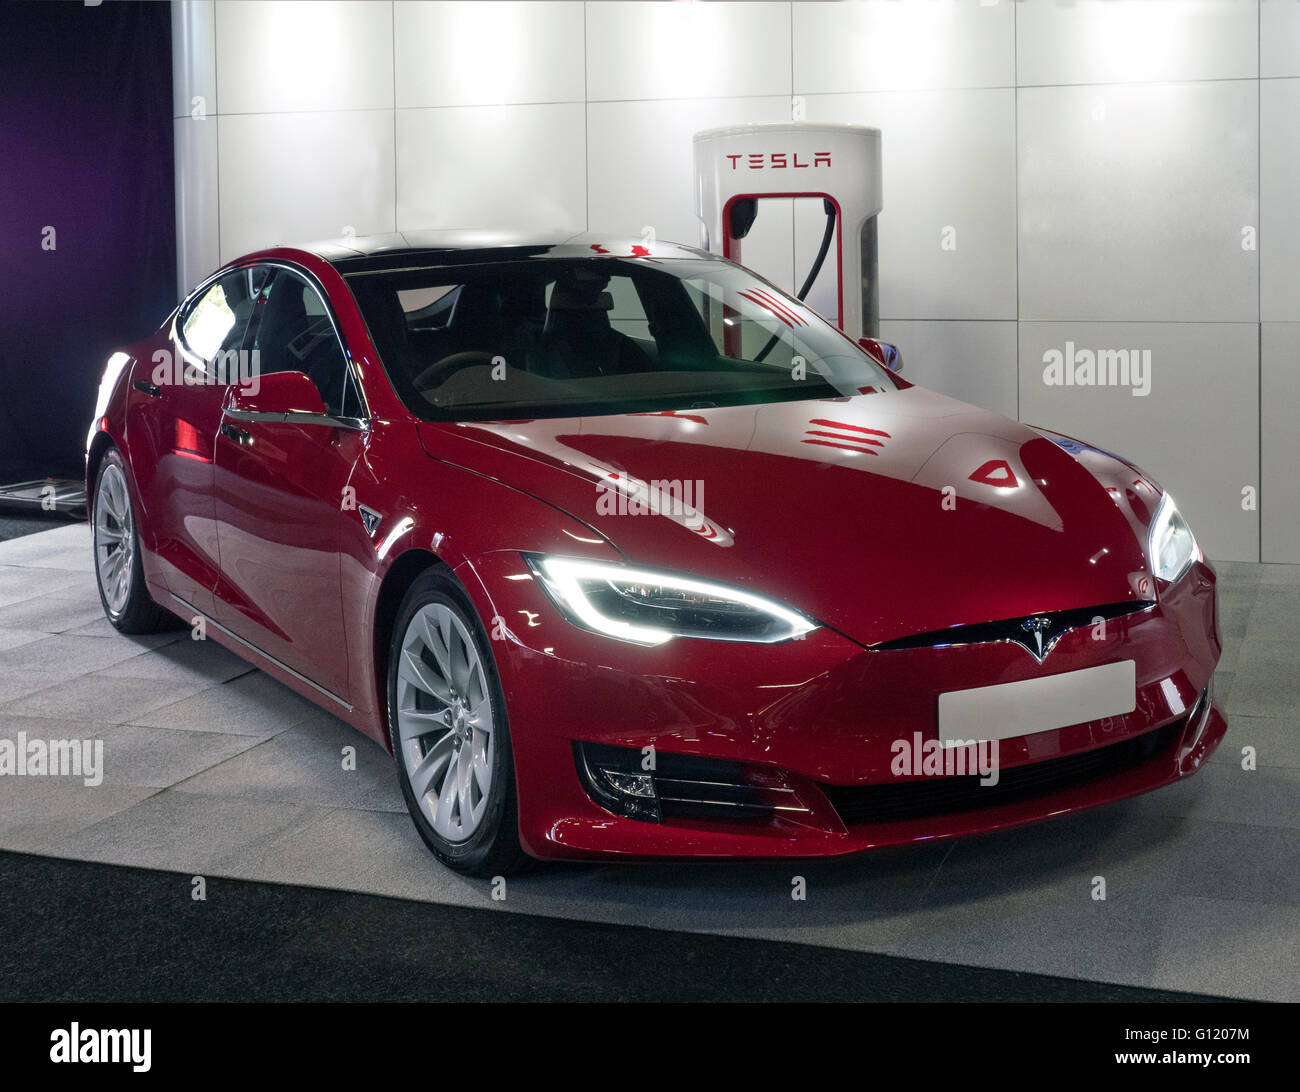 Tesla Electric automobile on charge at Tesla charging point - Stock Image